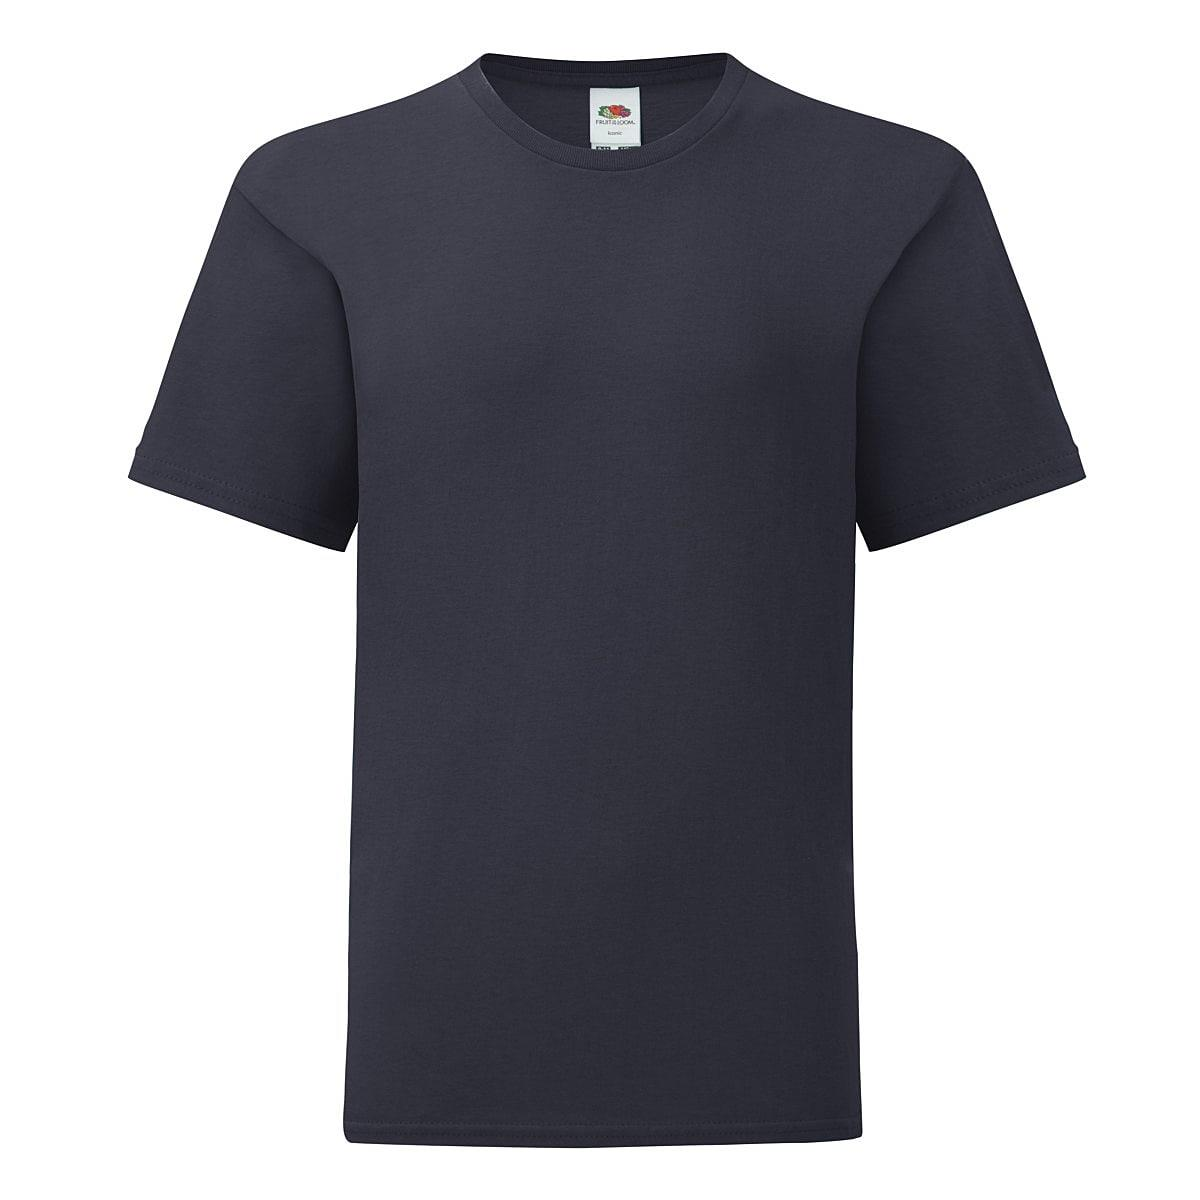 Fruit Of The Loom Kids Iconic T-Shirt in Deep Navy (Product Code: 61023)